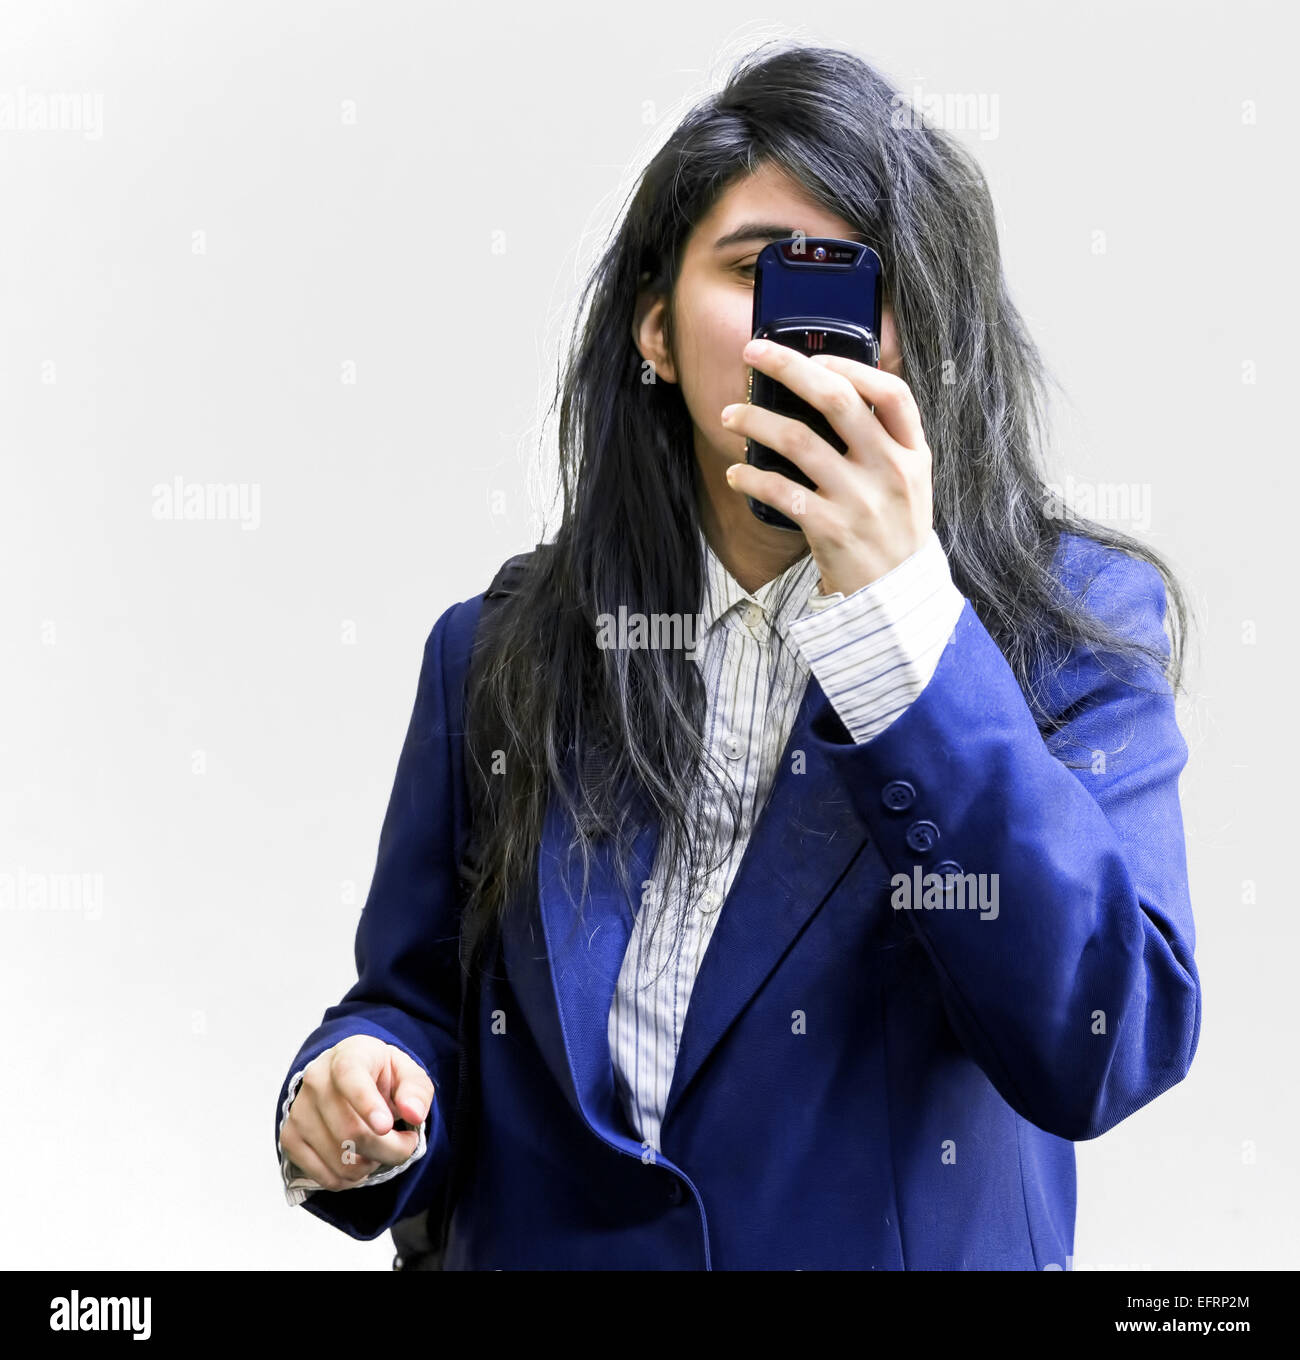 Latina teen girl holding cellphone a fait à huis clos Photo Stock